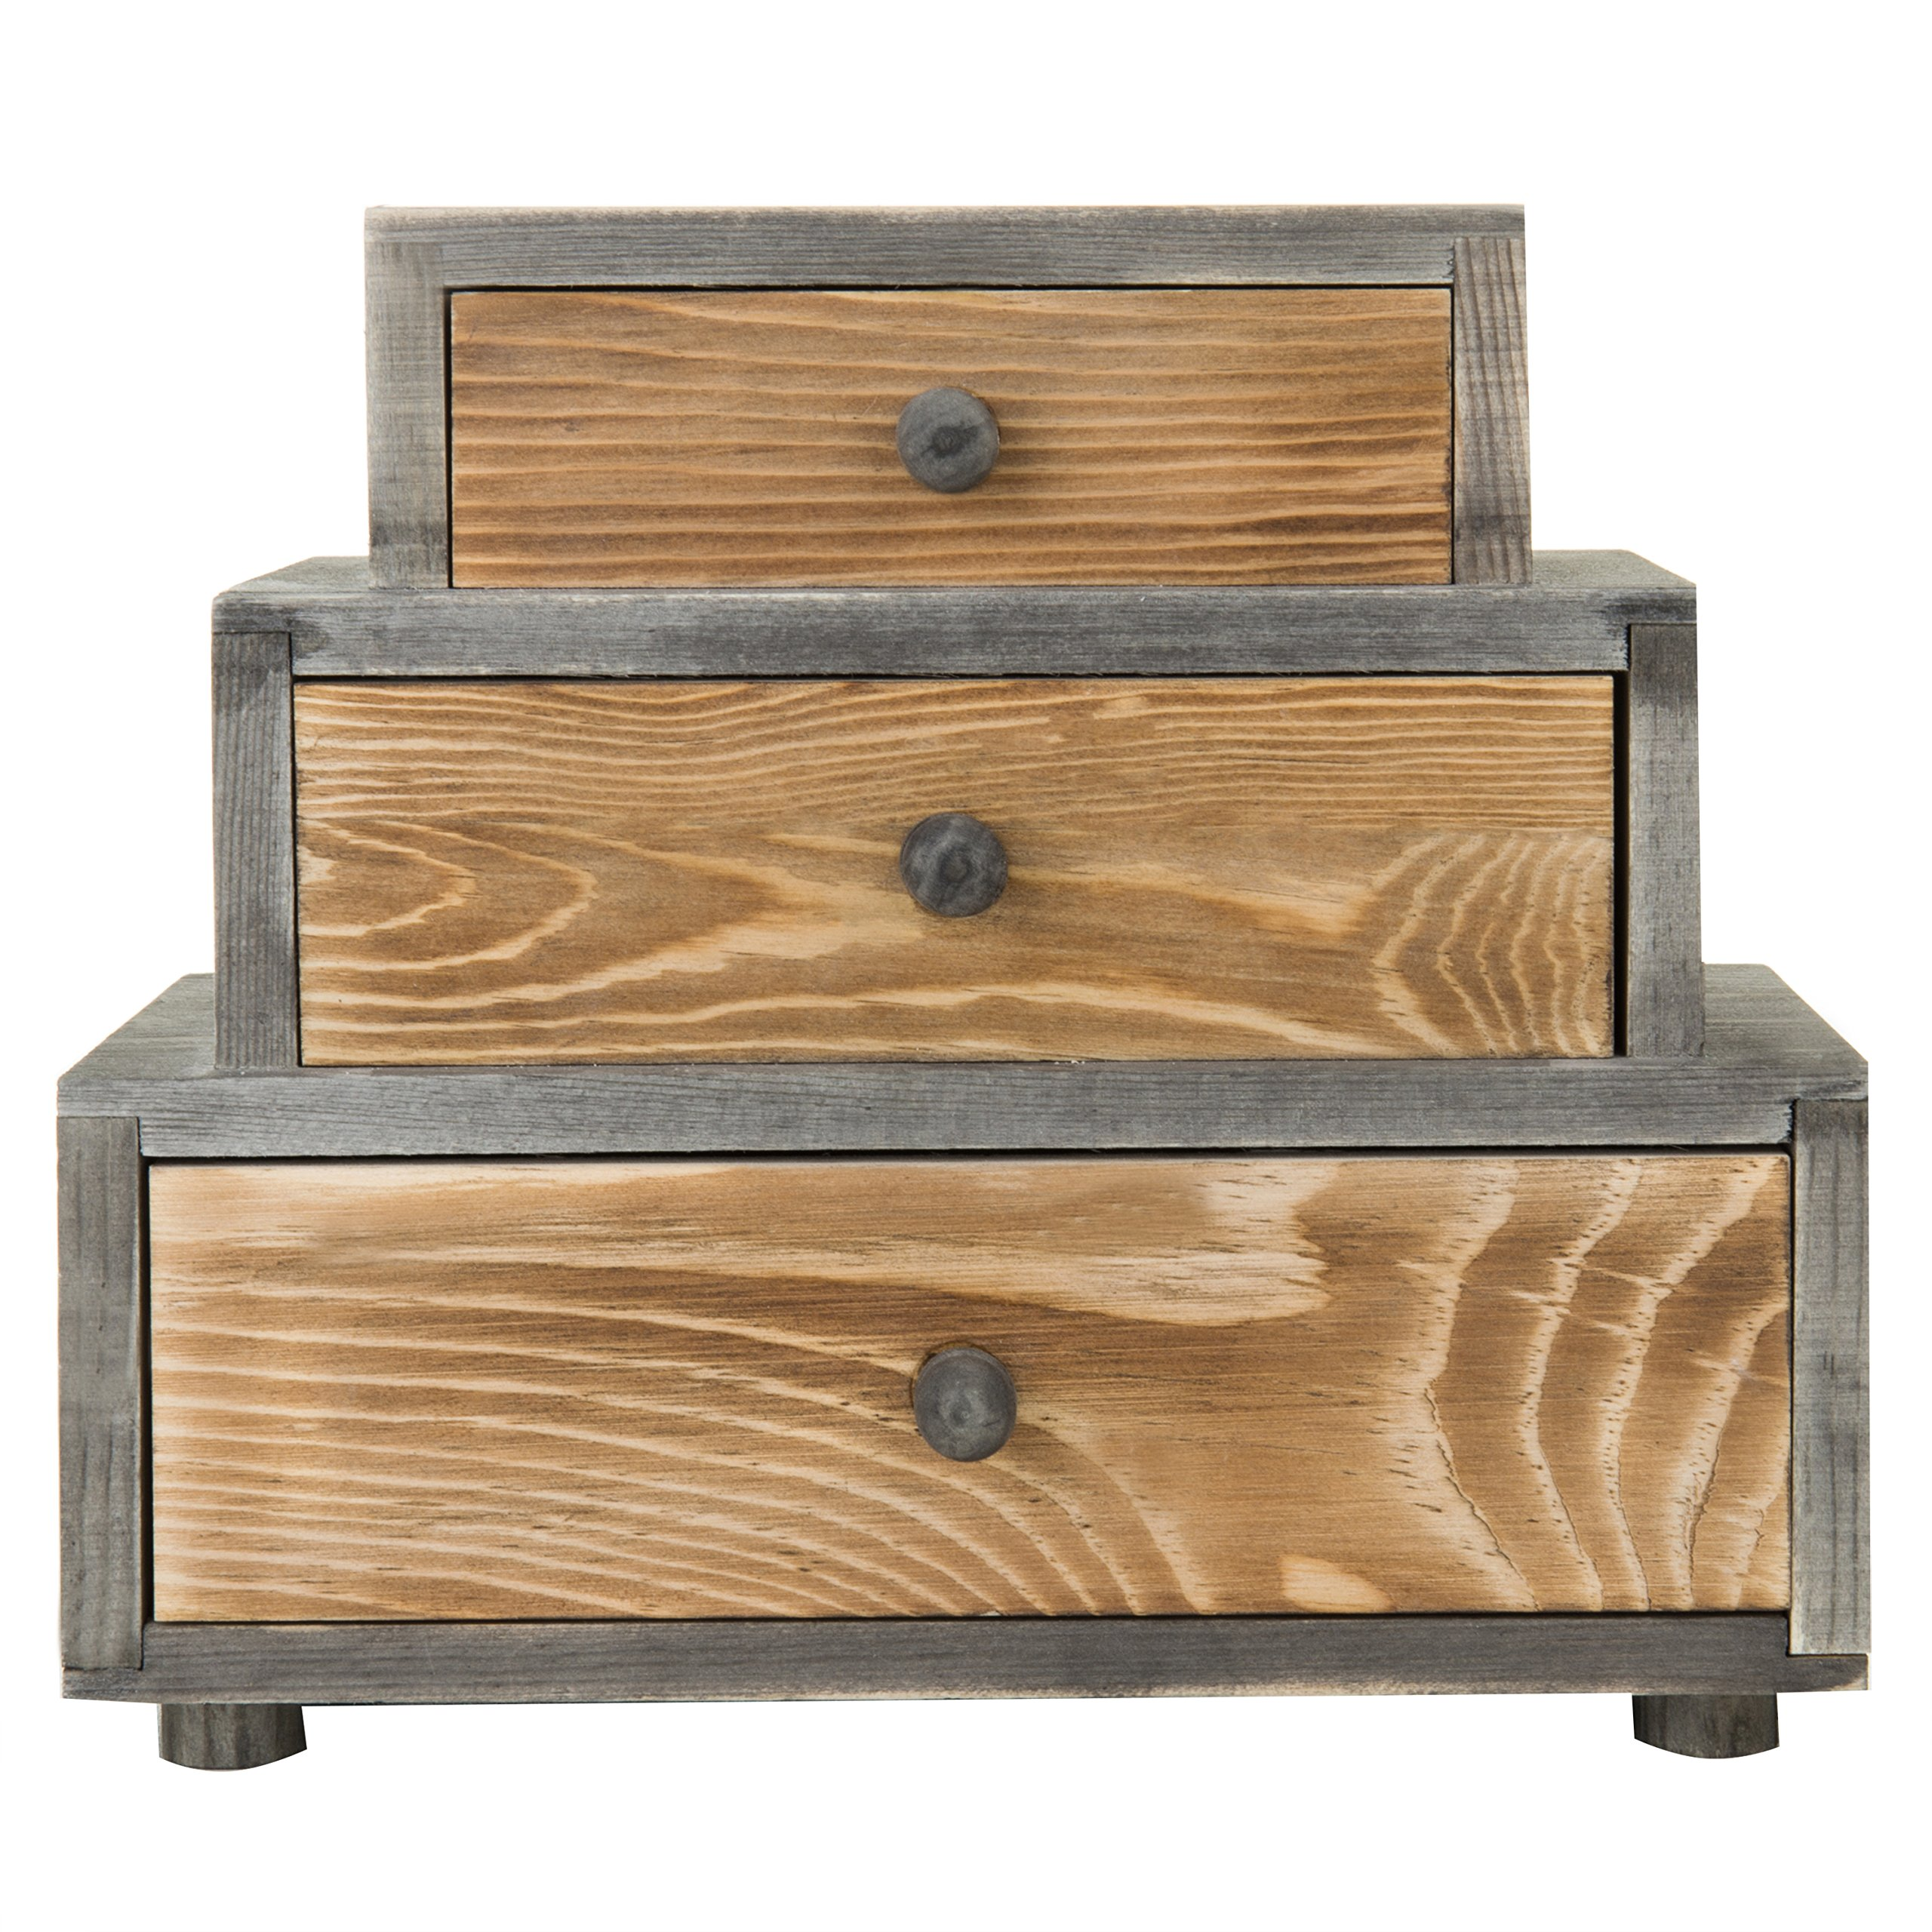 MyGift 3-Drawer Rustic Wood Office Storage Organizer by MyGift (Image #2)